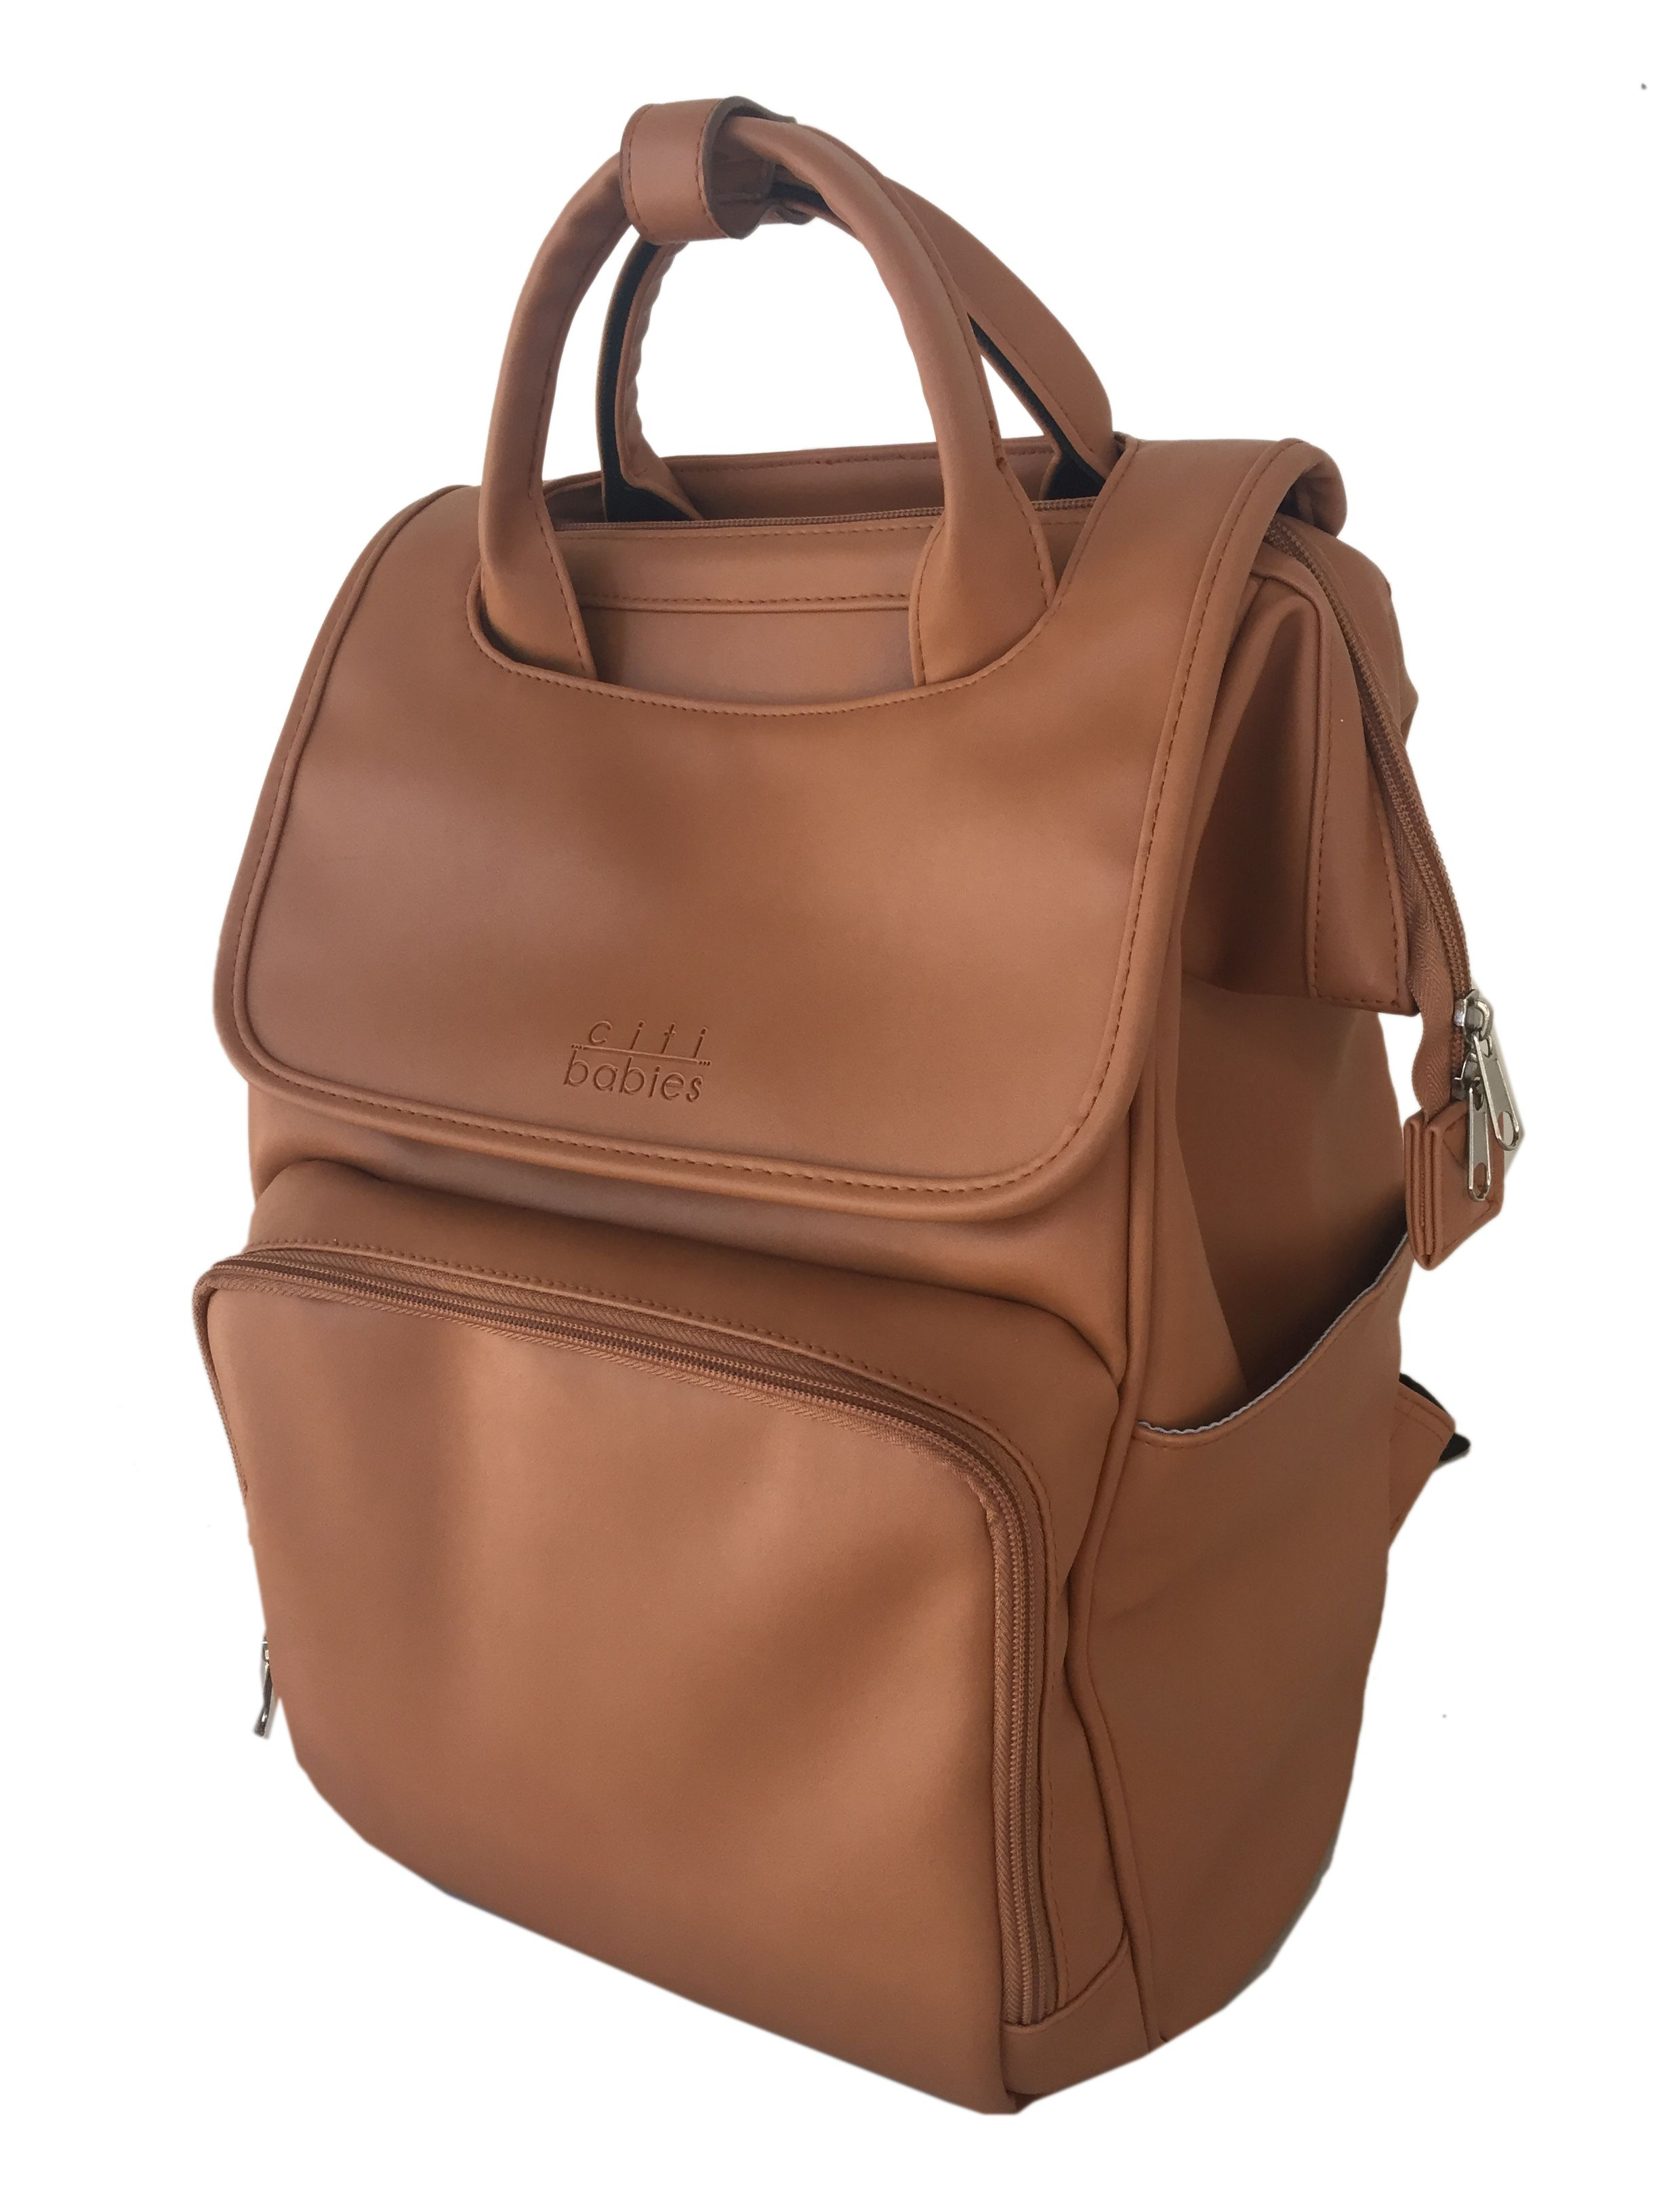 This Faux Leather Diaper Bag Is Eye Candy It S A Waterproof With Tons Of Storage Removable Flap And Backpack